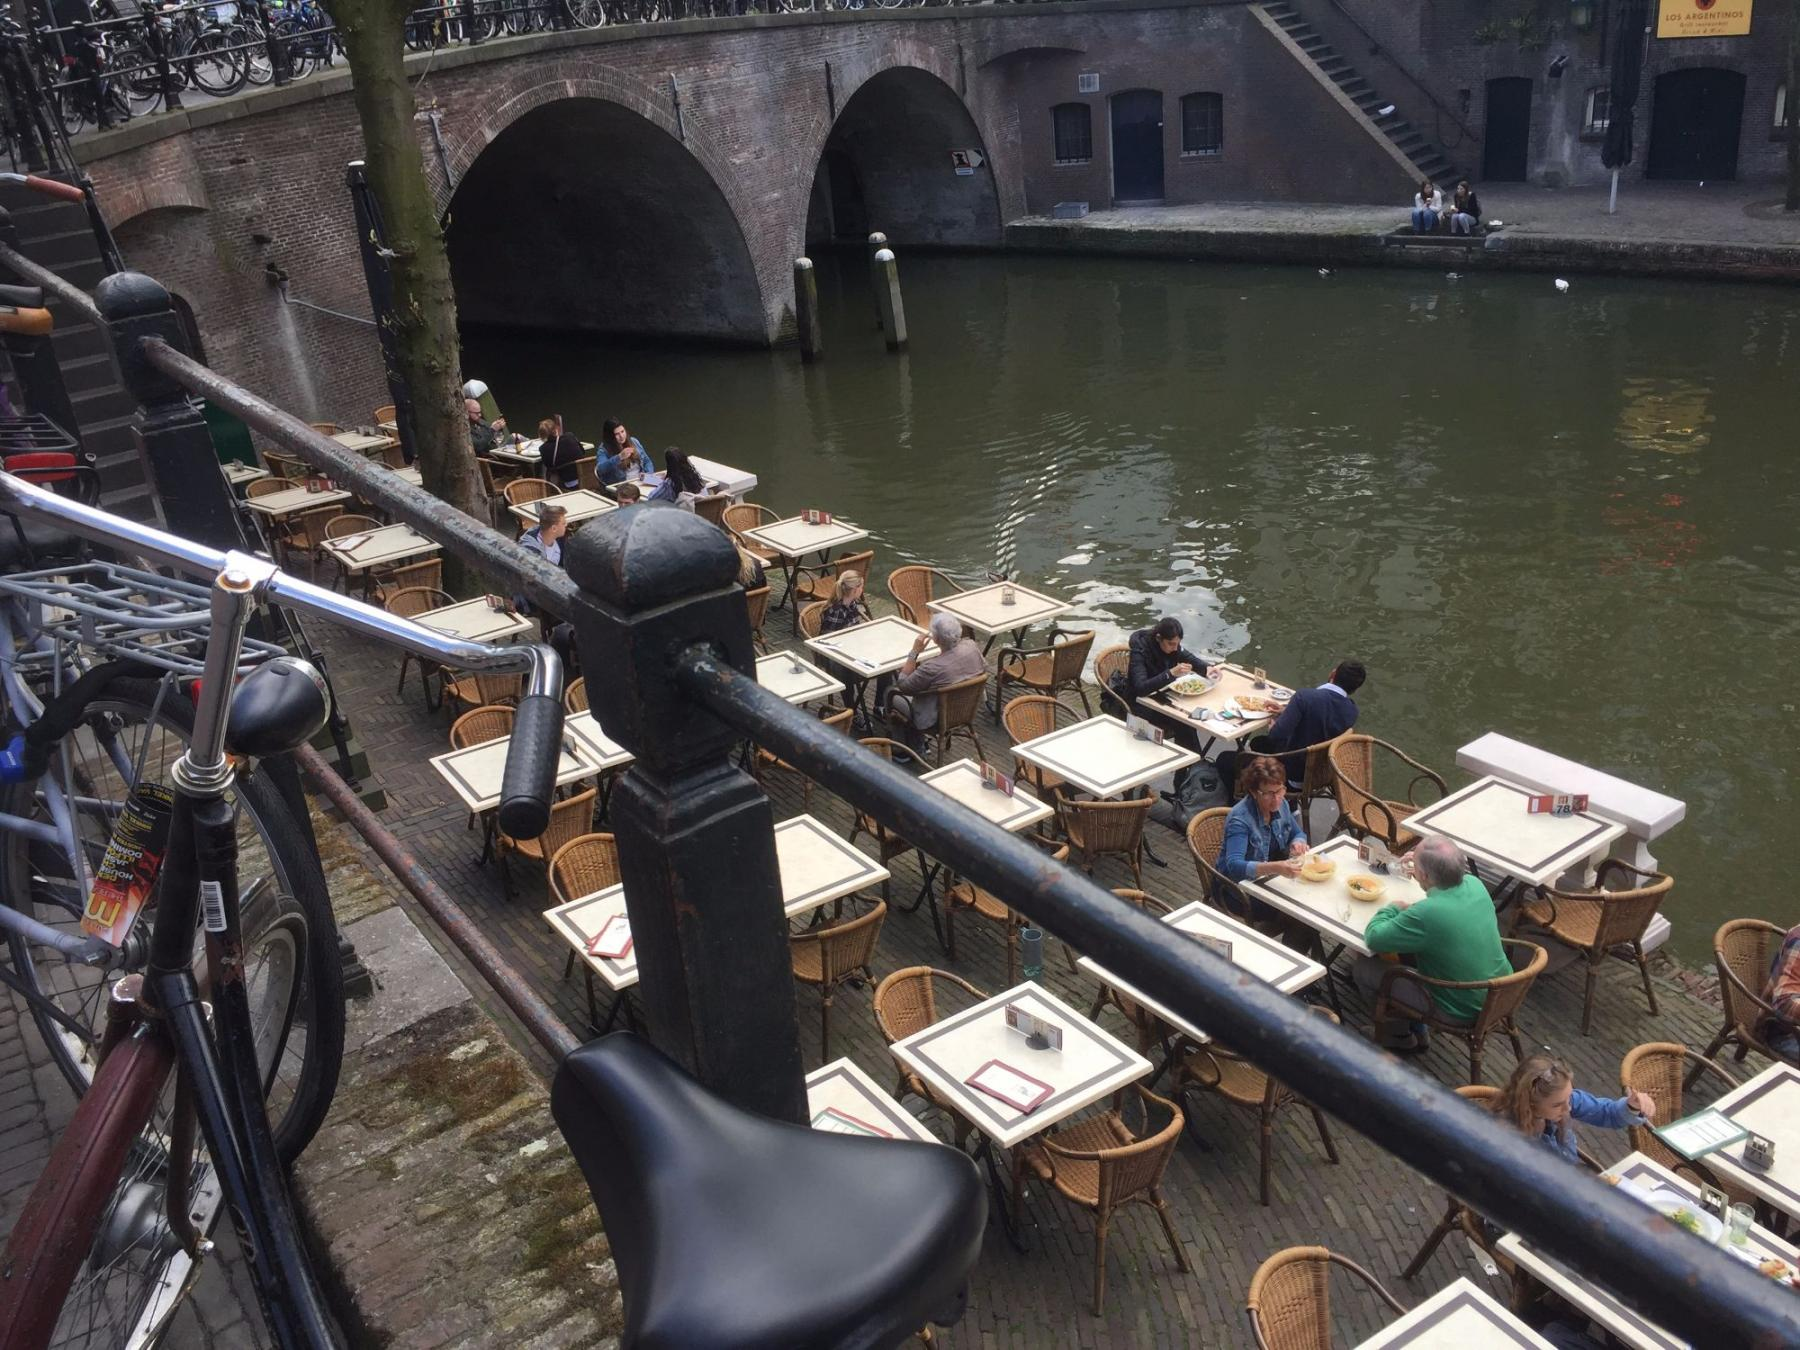 Canalbuilding tables and chairs outside